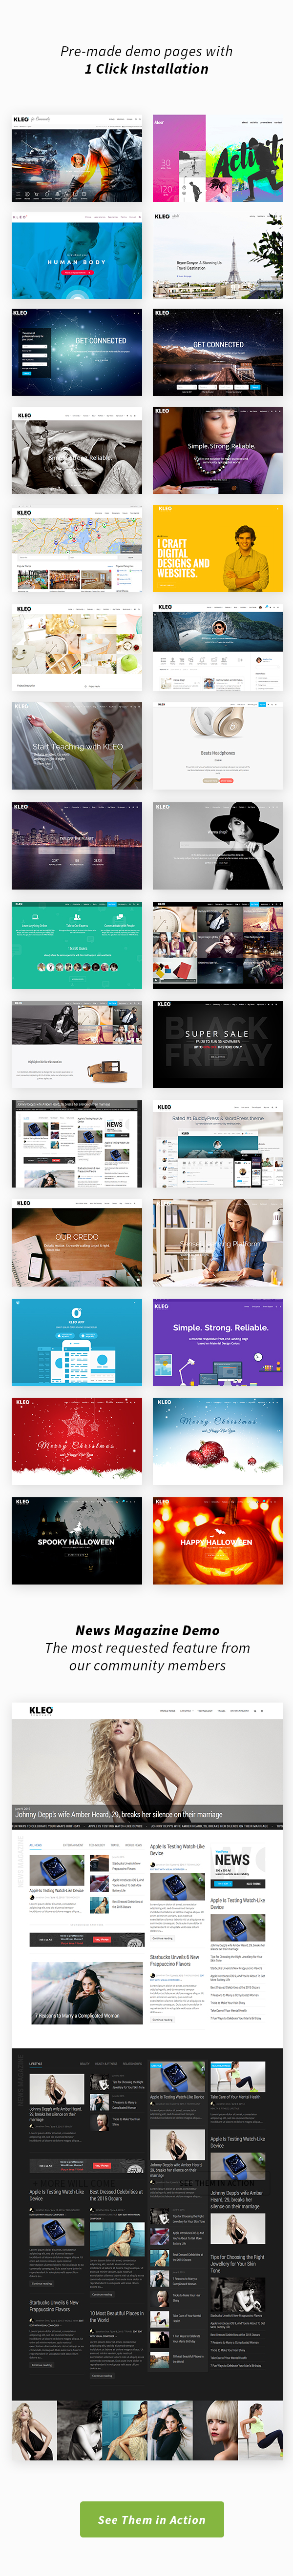 KLEO - Pro Community Focused, Multi-Purpose BuddyPress Theme - 3